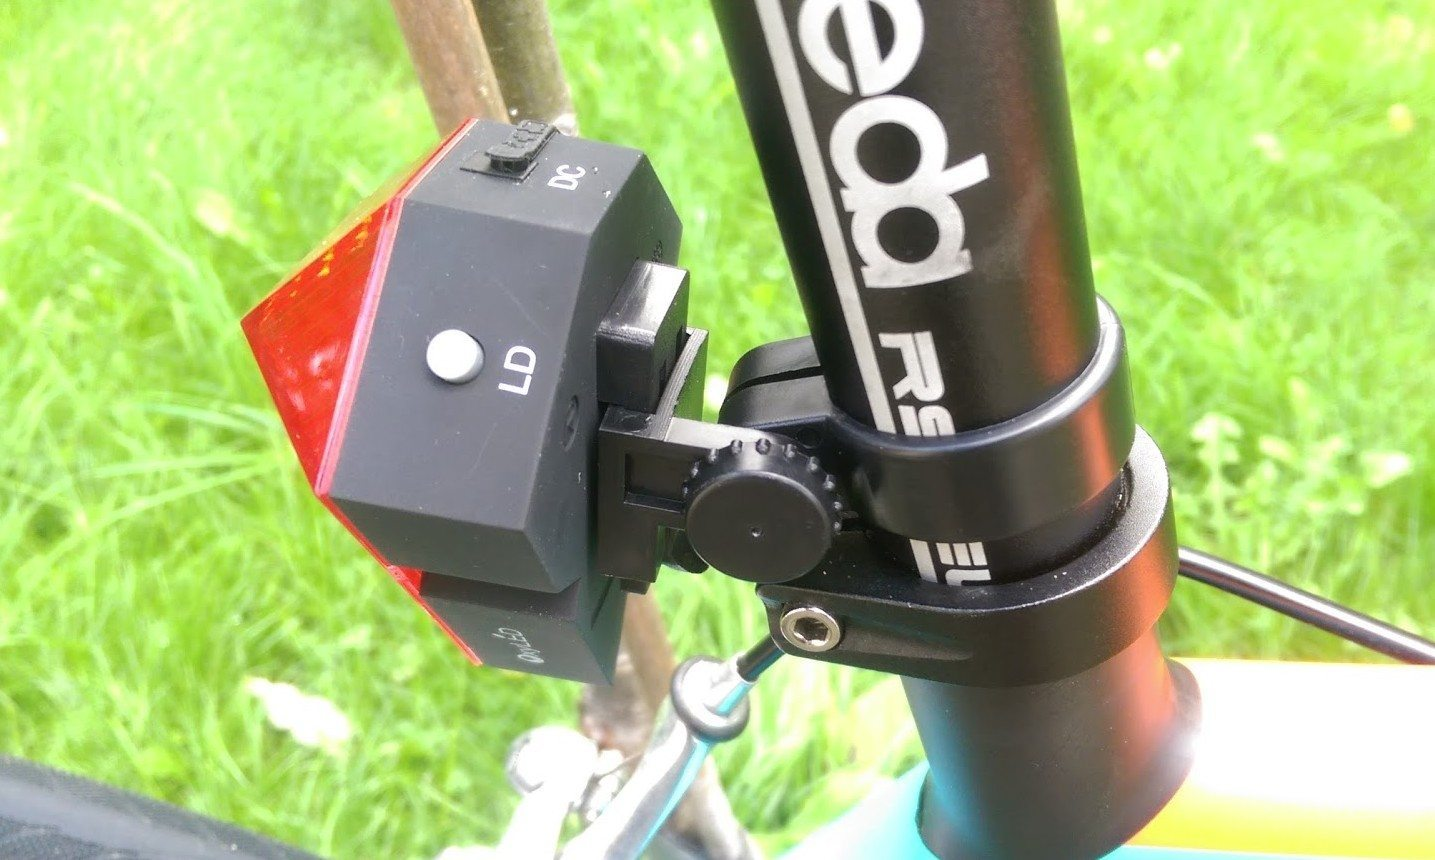 OxyLED Rechargeable Bike Tail Light